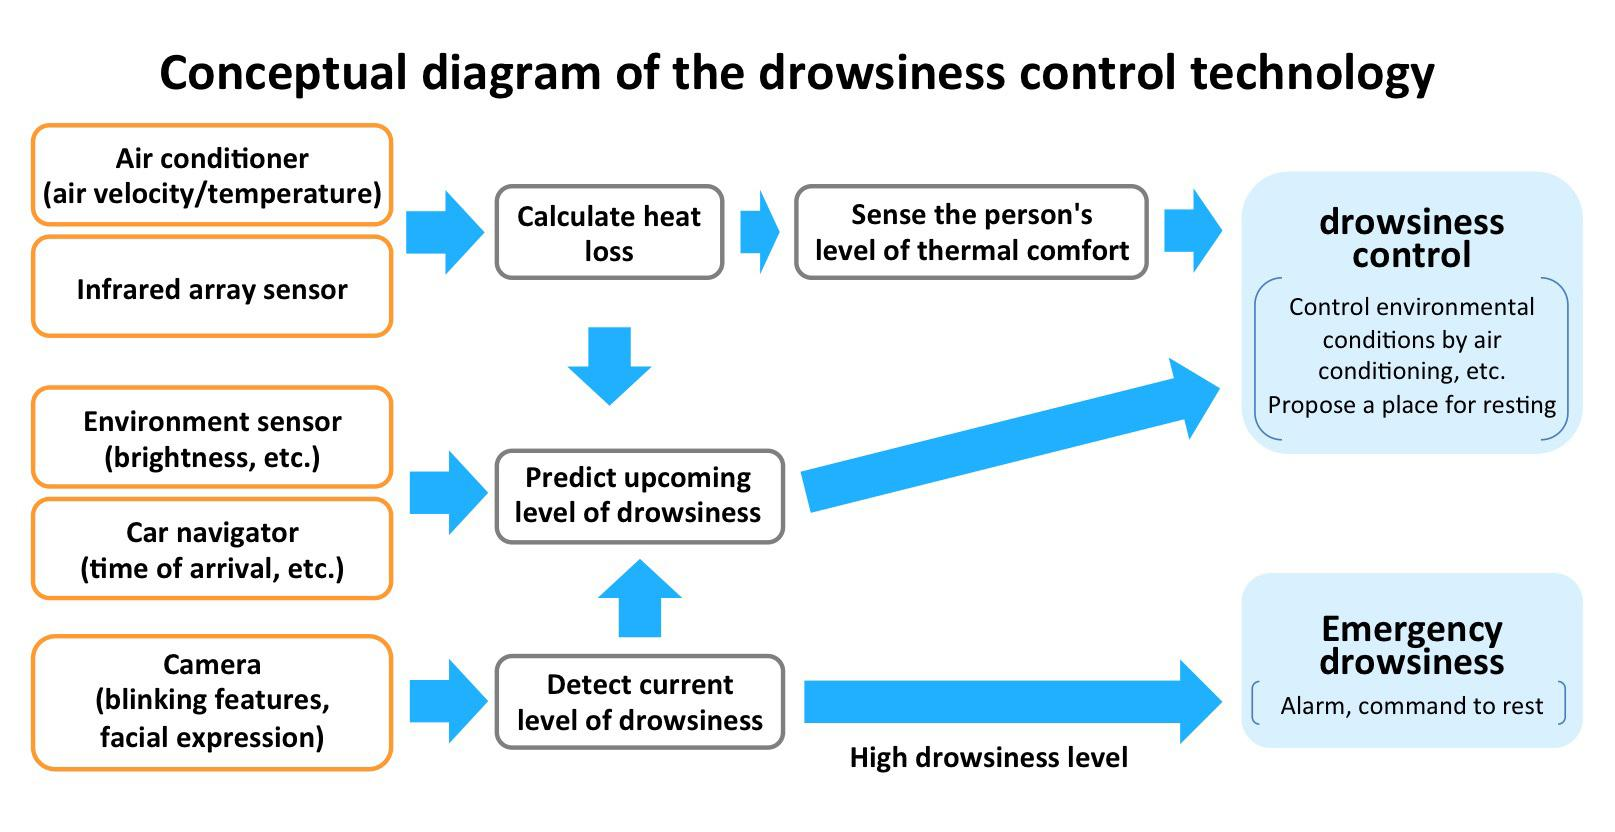 image of conceptual diagram of drowsiness control technology